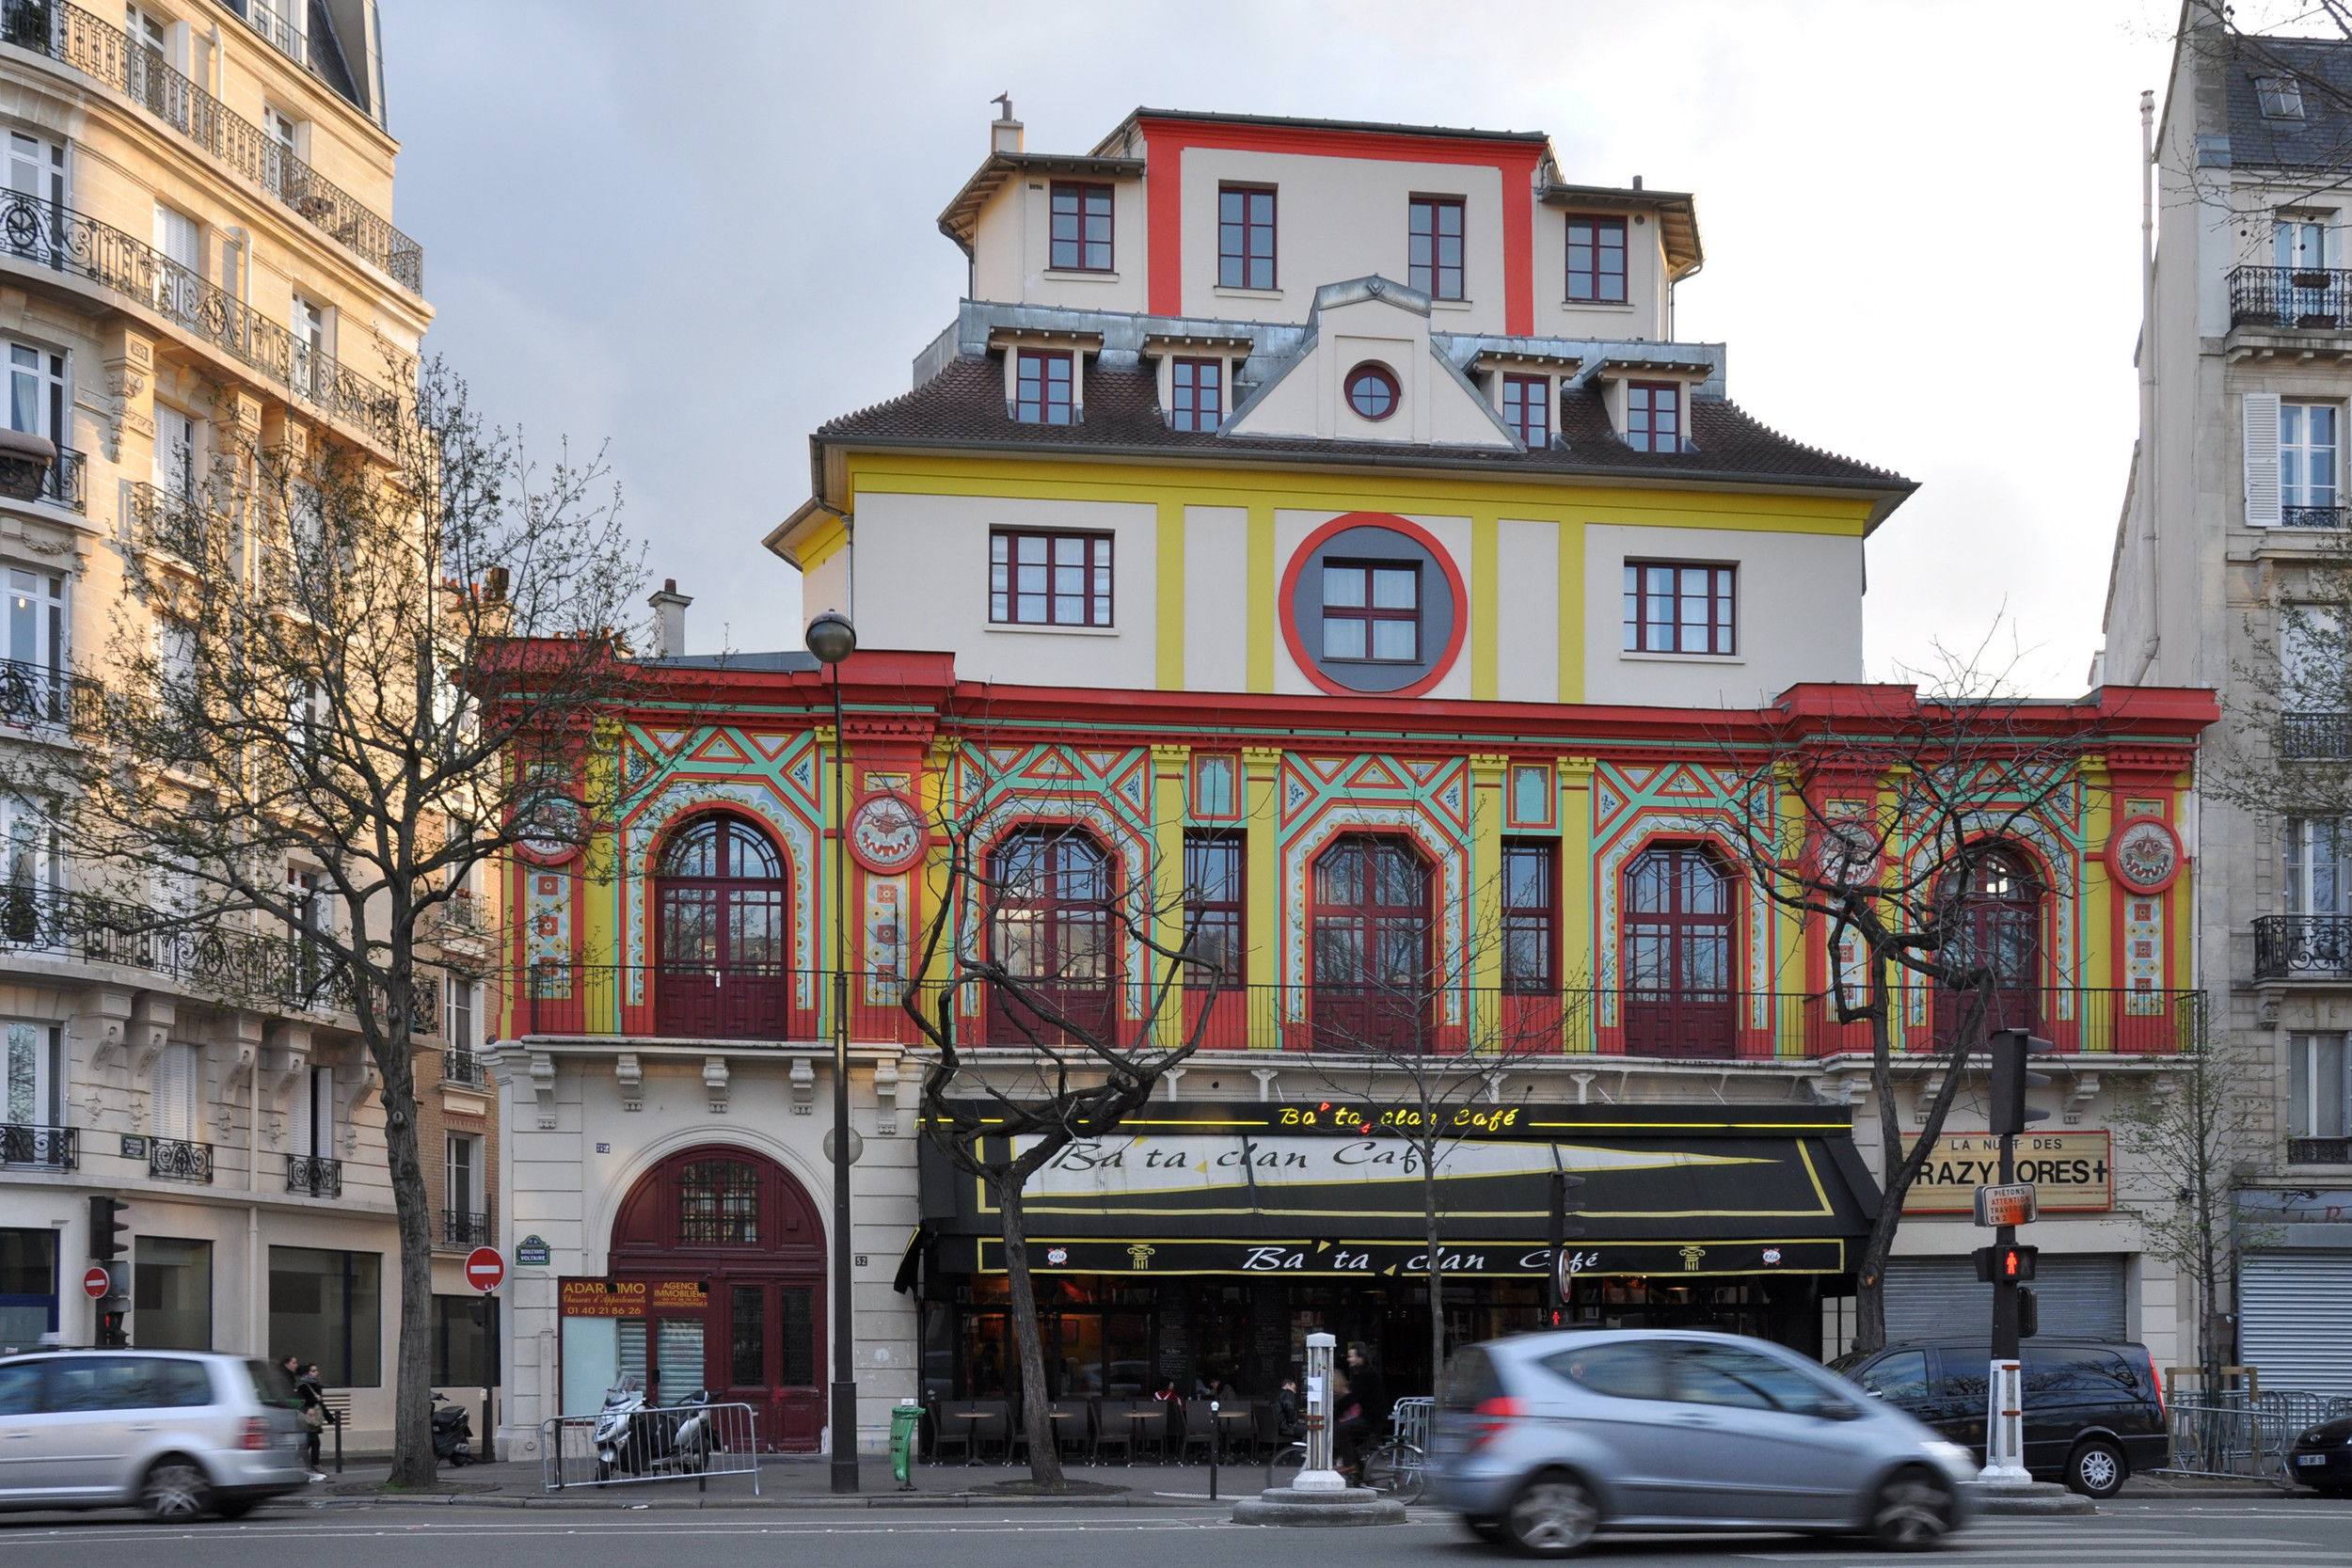 The Bataclan concert hall in Paris, site of an Islamist terror attack in which 89 people were killed Friday among 129 deaths across six coordinated attacks. Credit:Céline via Wikimedia Commons.